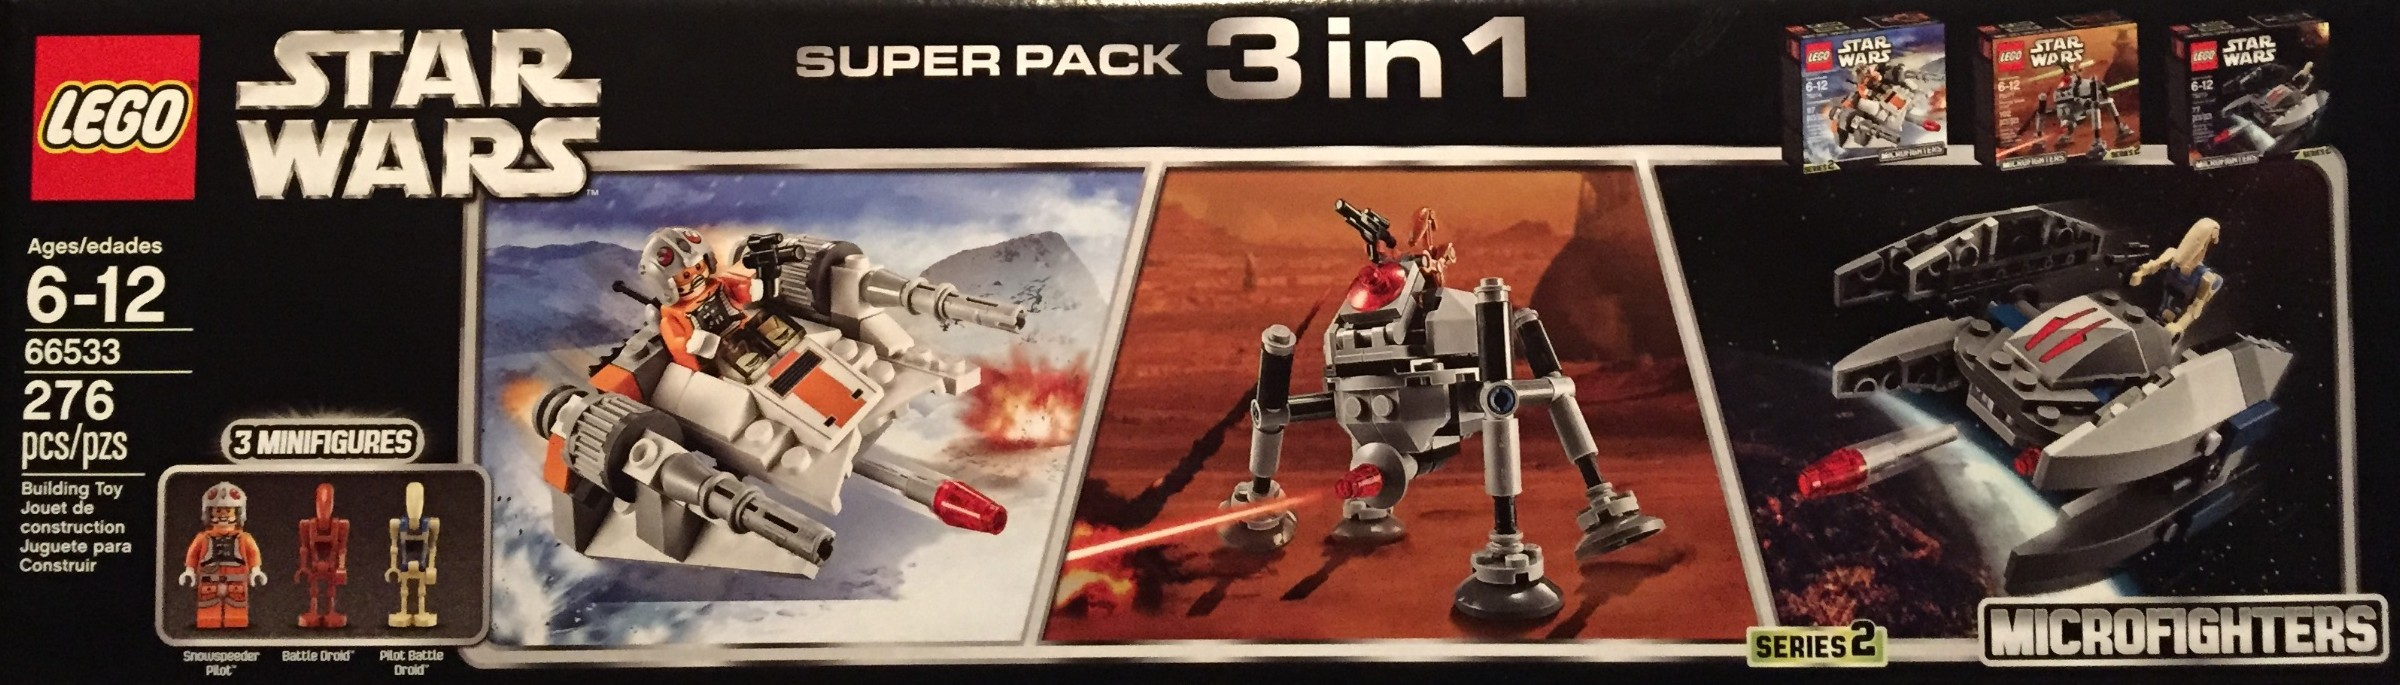 Microfighter 3-in-1 Super Pack 1